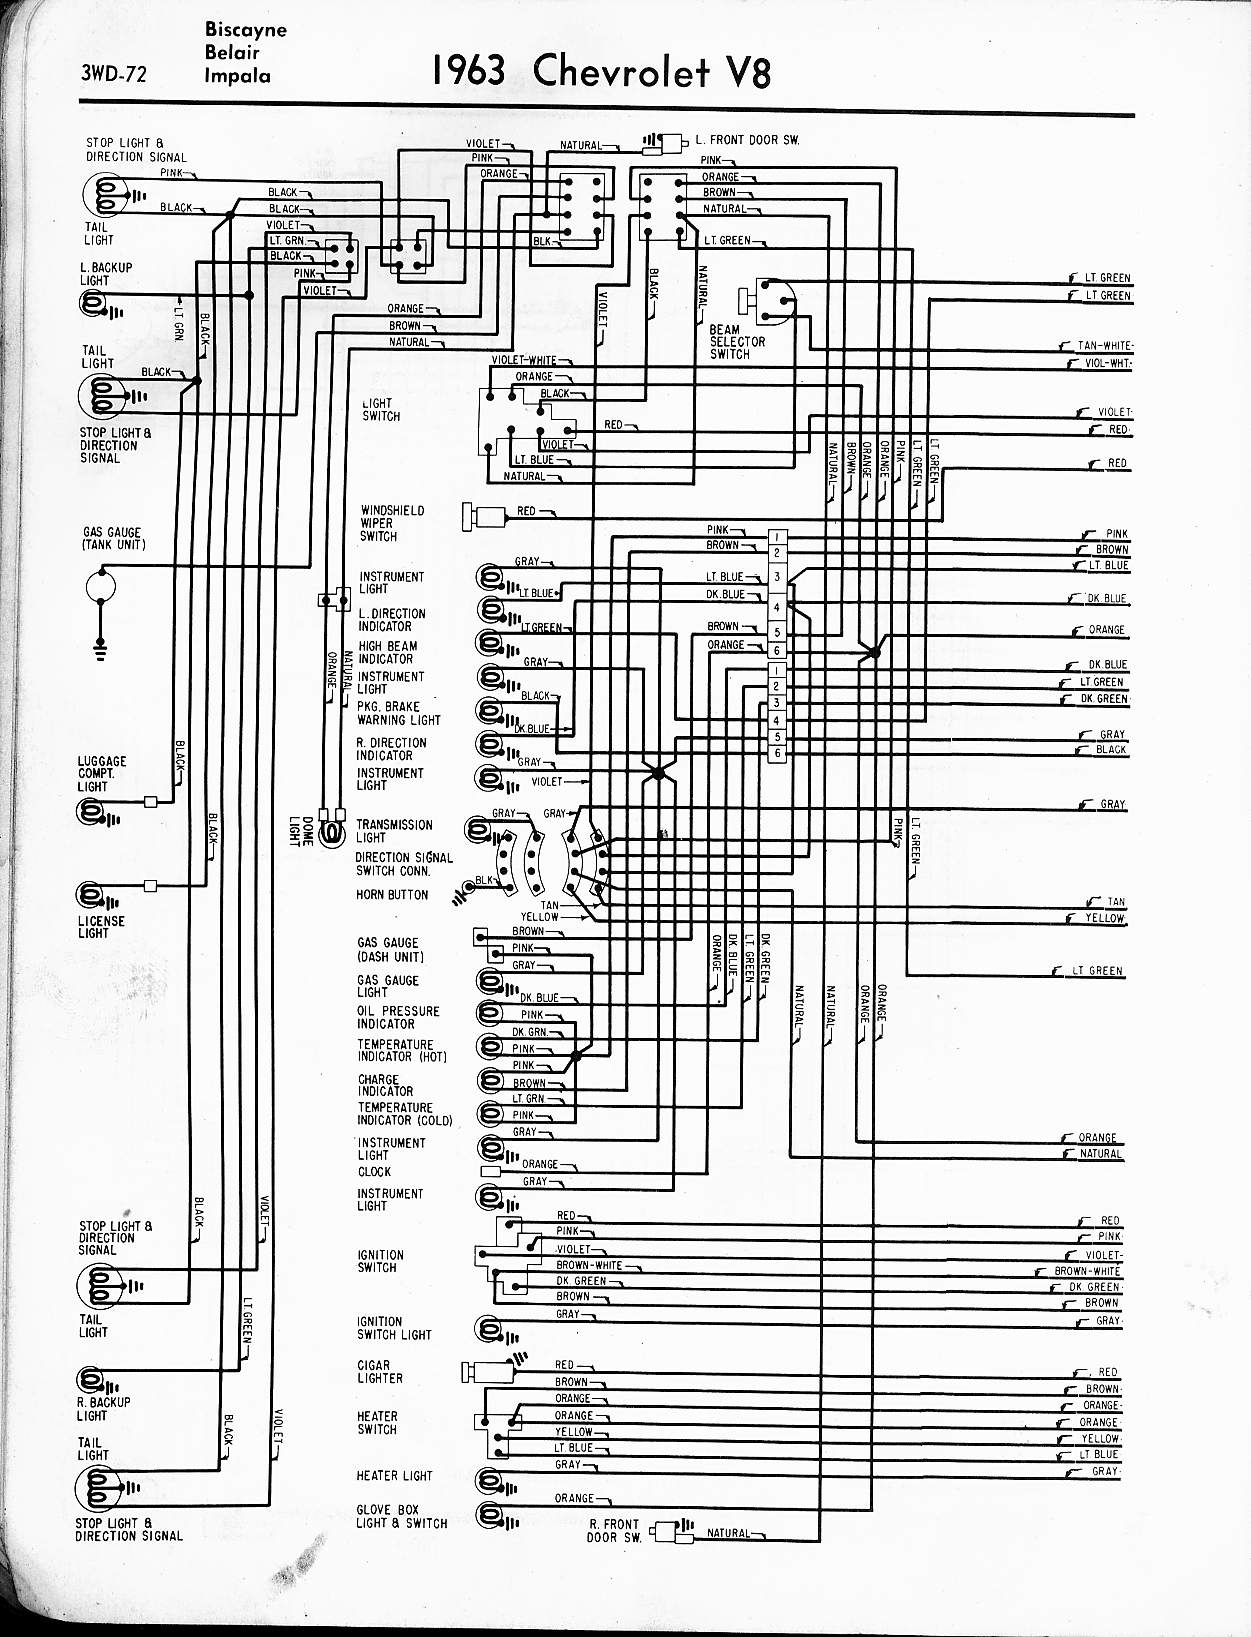 1974 nova wiper wiring diagram